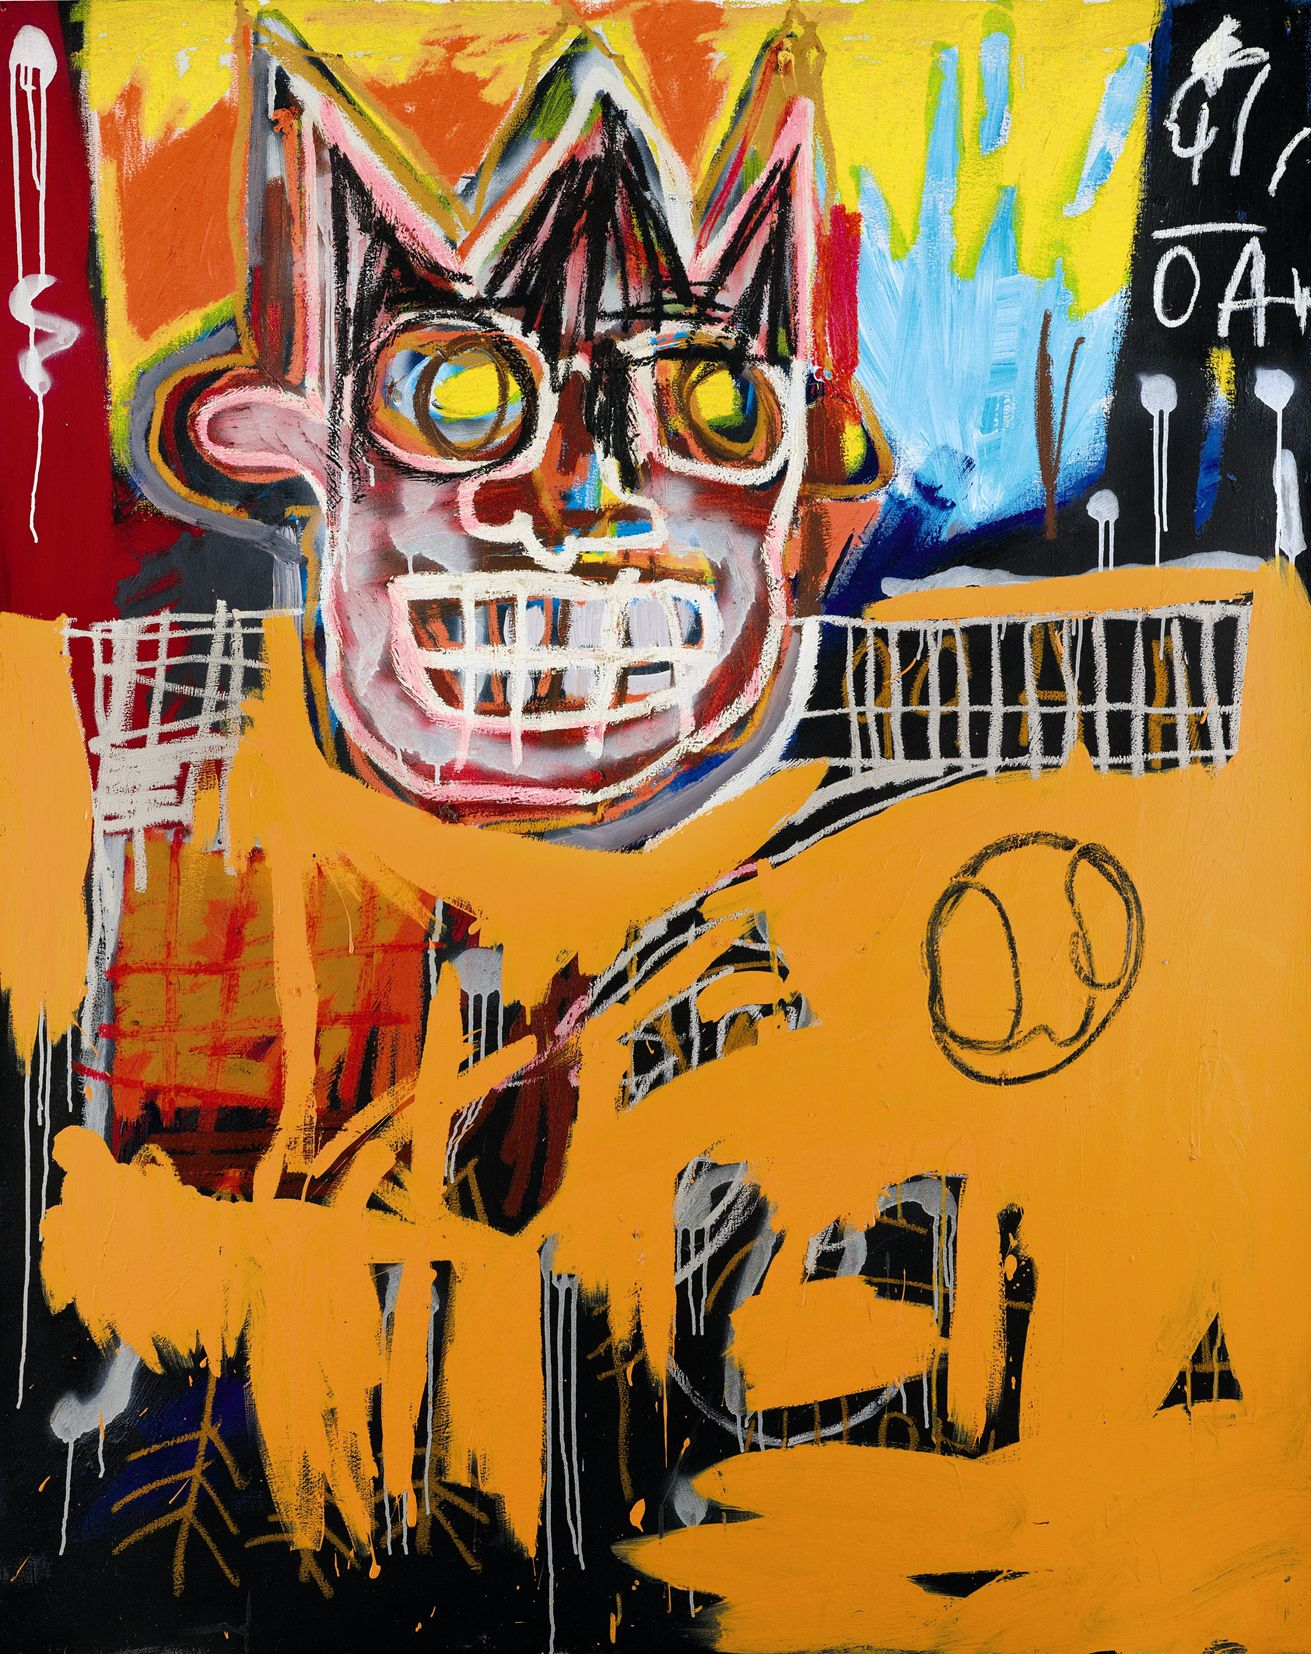 Jean michel basquiat soth basquiat a graffiti artist who became a 1980s art star signed relatively few of his canvasses